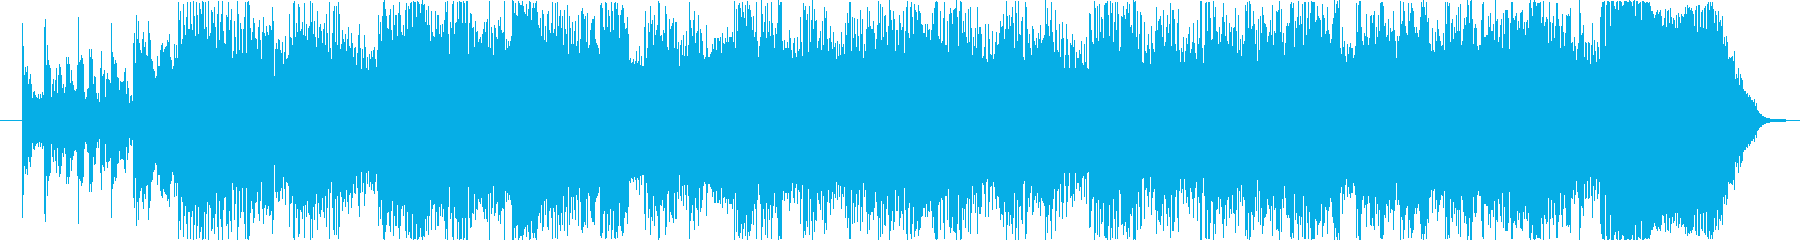 Exhilarating sprinting, gorgeous and fun CM brass rock d's reproduced waveform